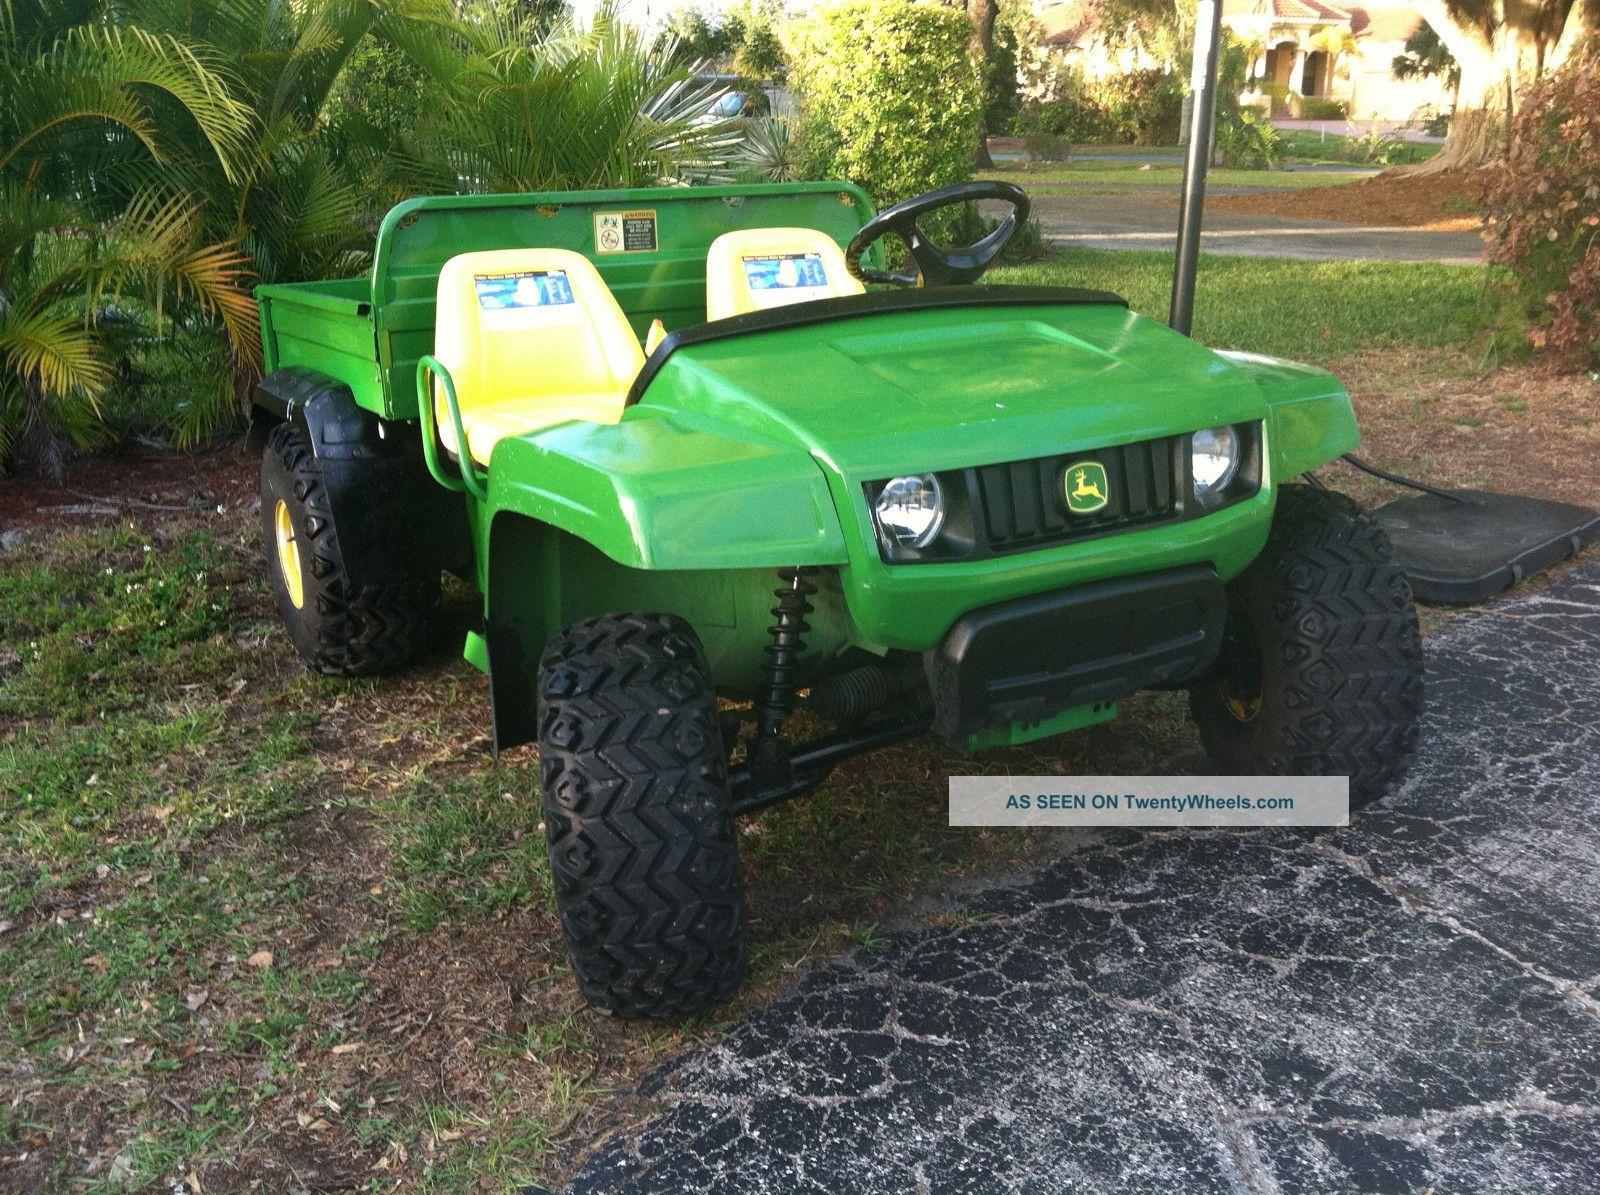 John Deere,  Ts Gator,  2007,  Utv,  Atv,  Dump Bed, Utility Vehicles photo